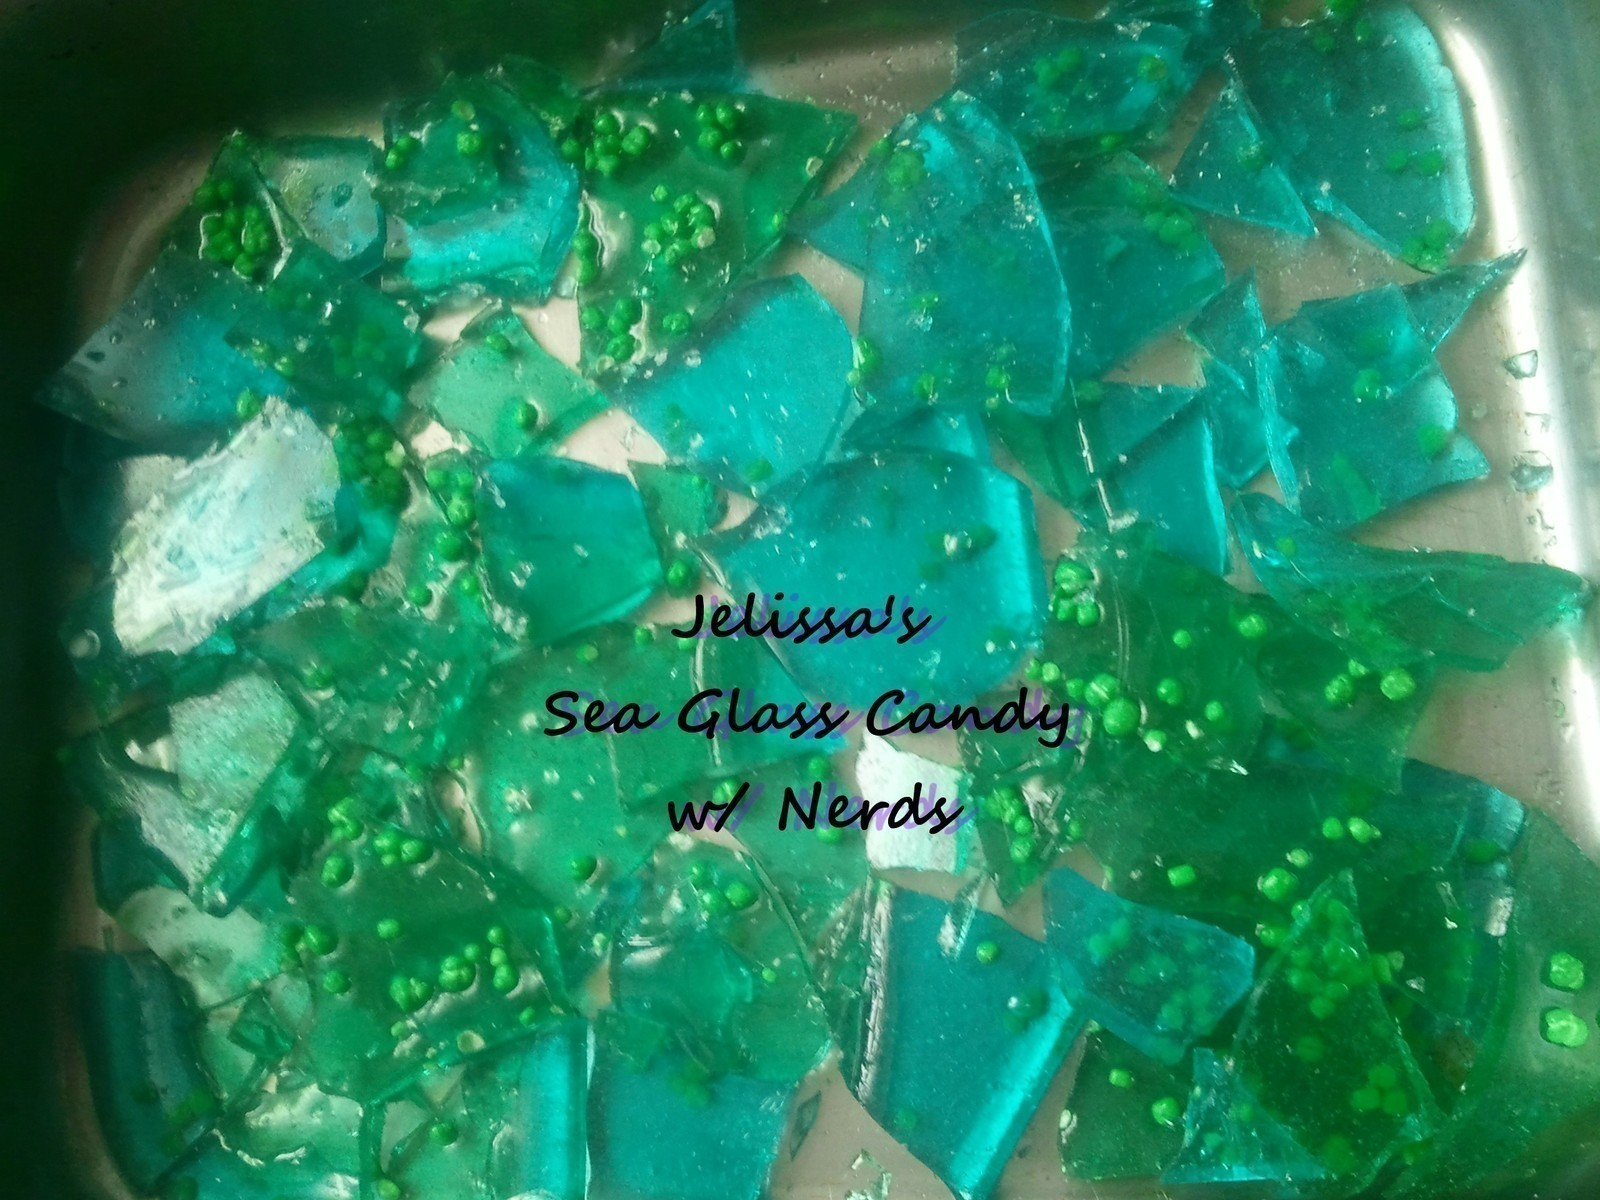 Sea Glass Candy 183 Glass Candy 183 Recipes On Cut Out Keep